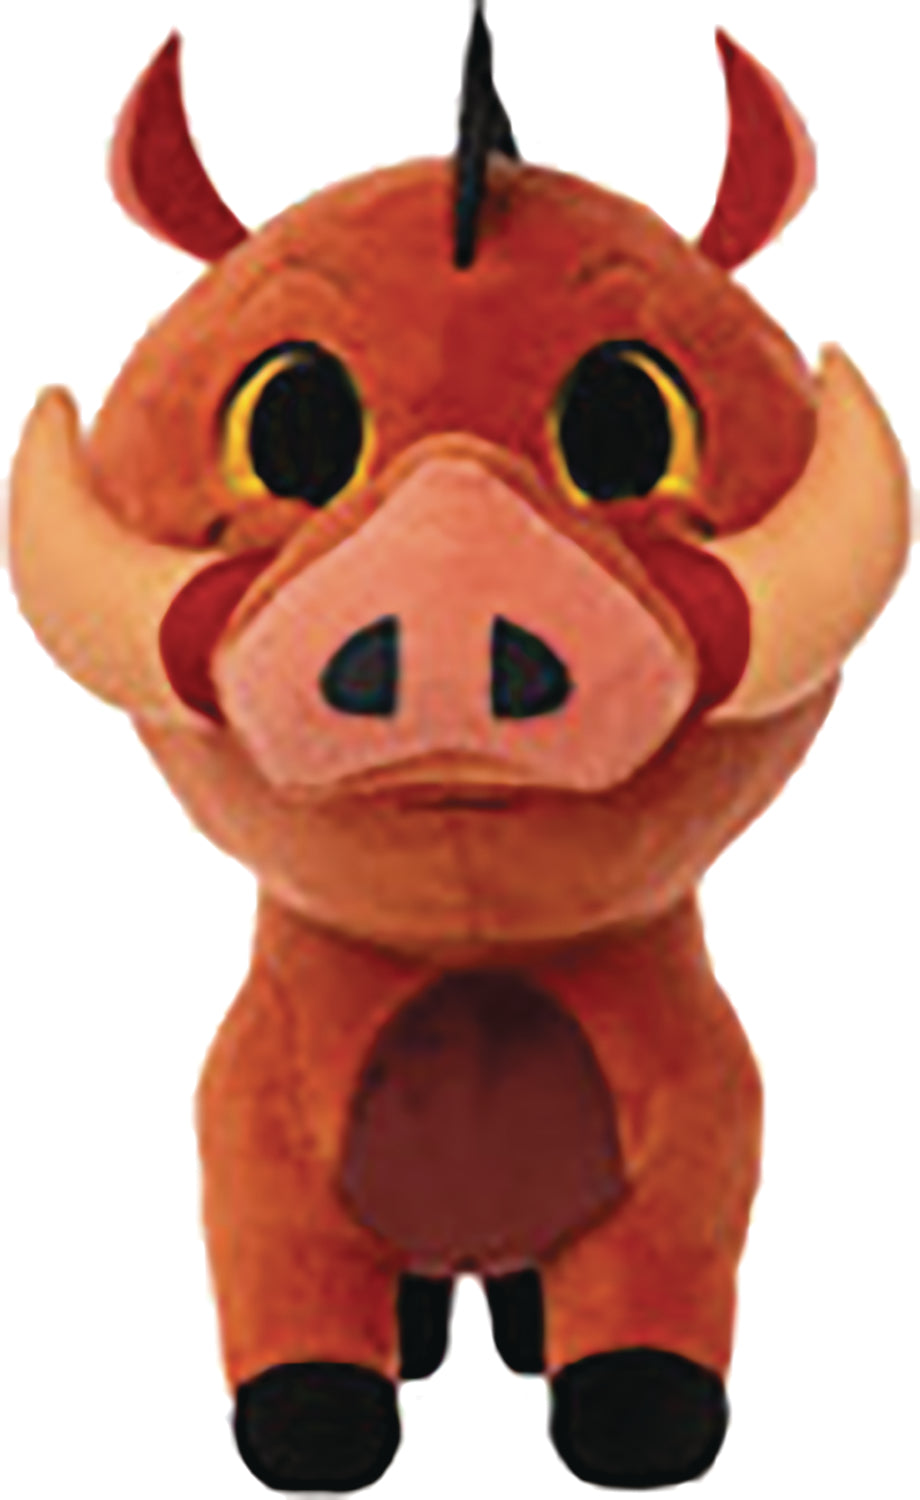 LION KING PUMBAA PLUSH (C: 1-1-1)